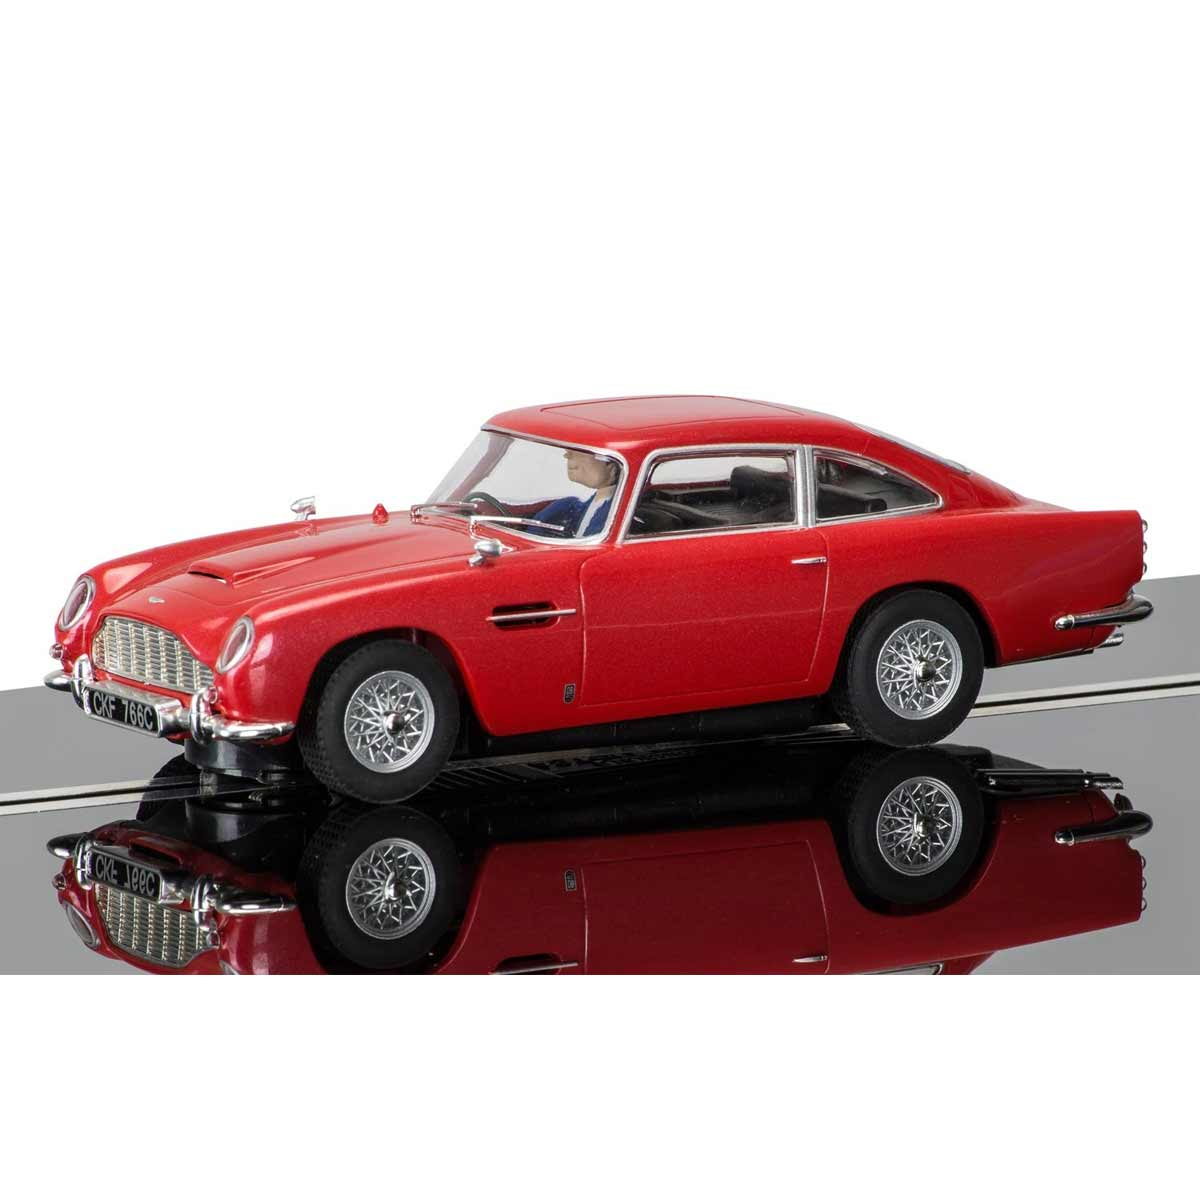 aston martin db5 colours with Scalextric Aston Martin Db5 C3722 on Yuzhou Light Maze Installation Brut Deluxe likewise Casino Royale chipset additionally P2 additionally Mercedes Benz Sprinter En Venta Usadas En Merida Yucatan together with Mercedes C Class Coupe Finance Offers.